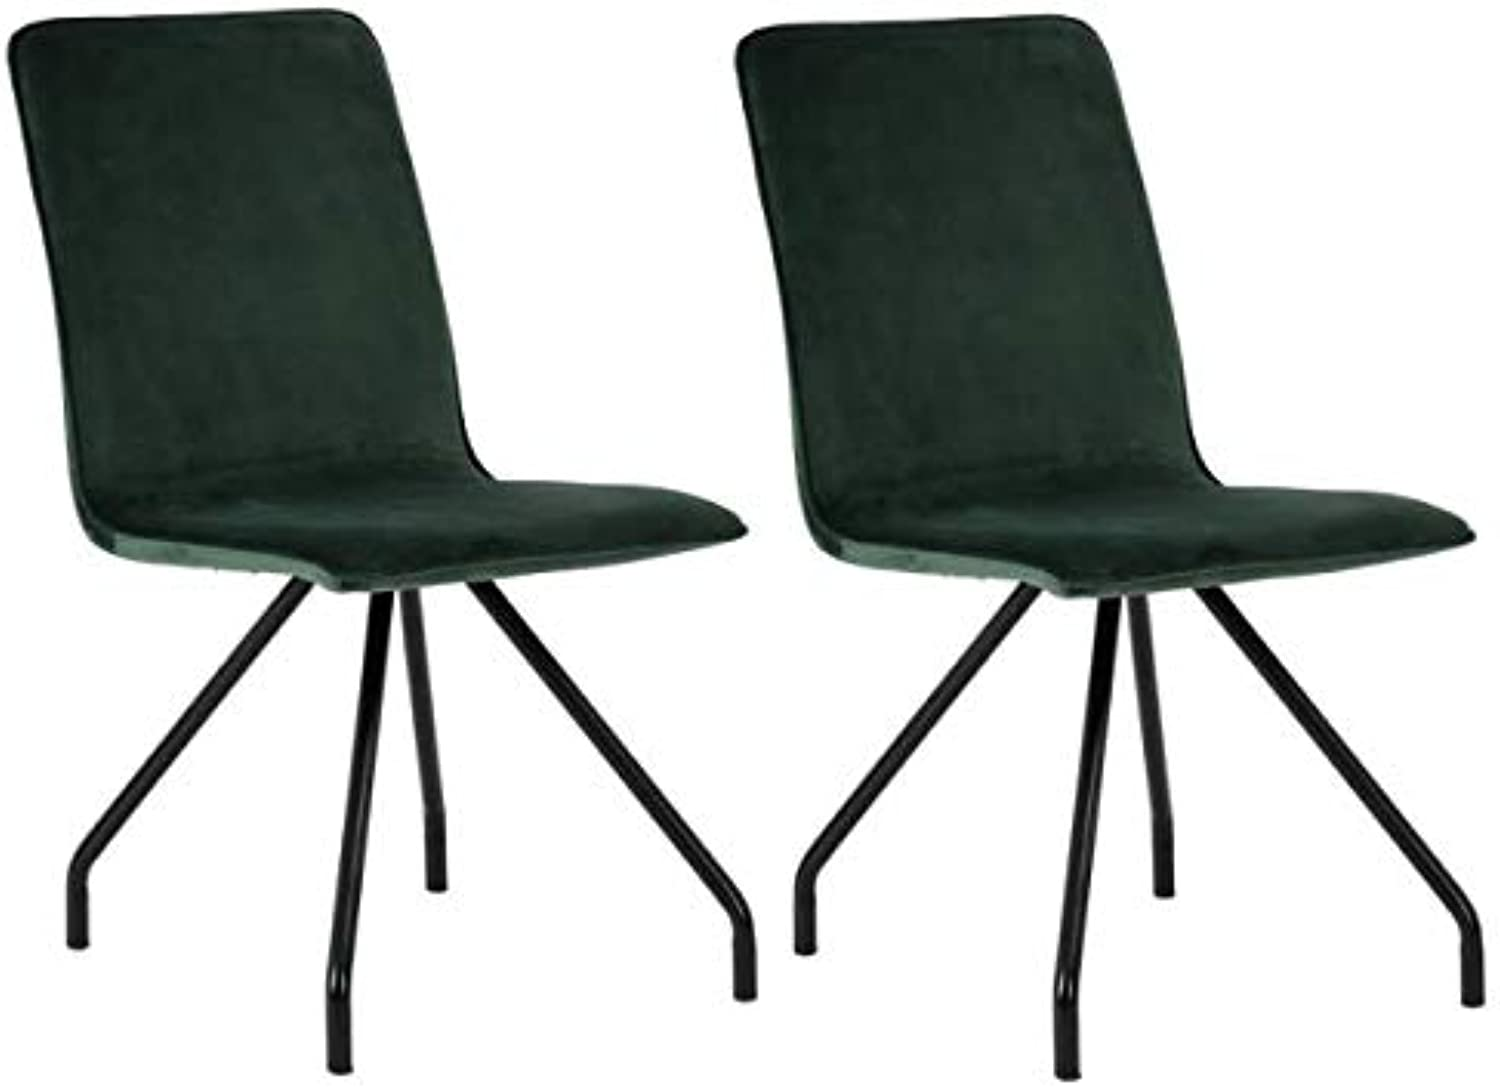 Homy Casa Dining Chairs Velvet Set of 2 Eiffel Living Room Side Chairs with Metal Legs,Green